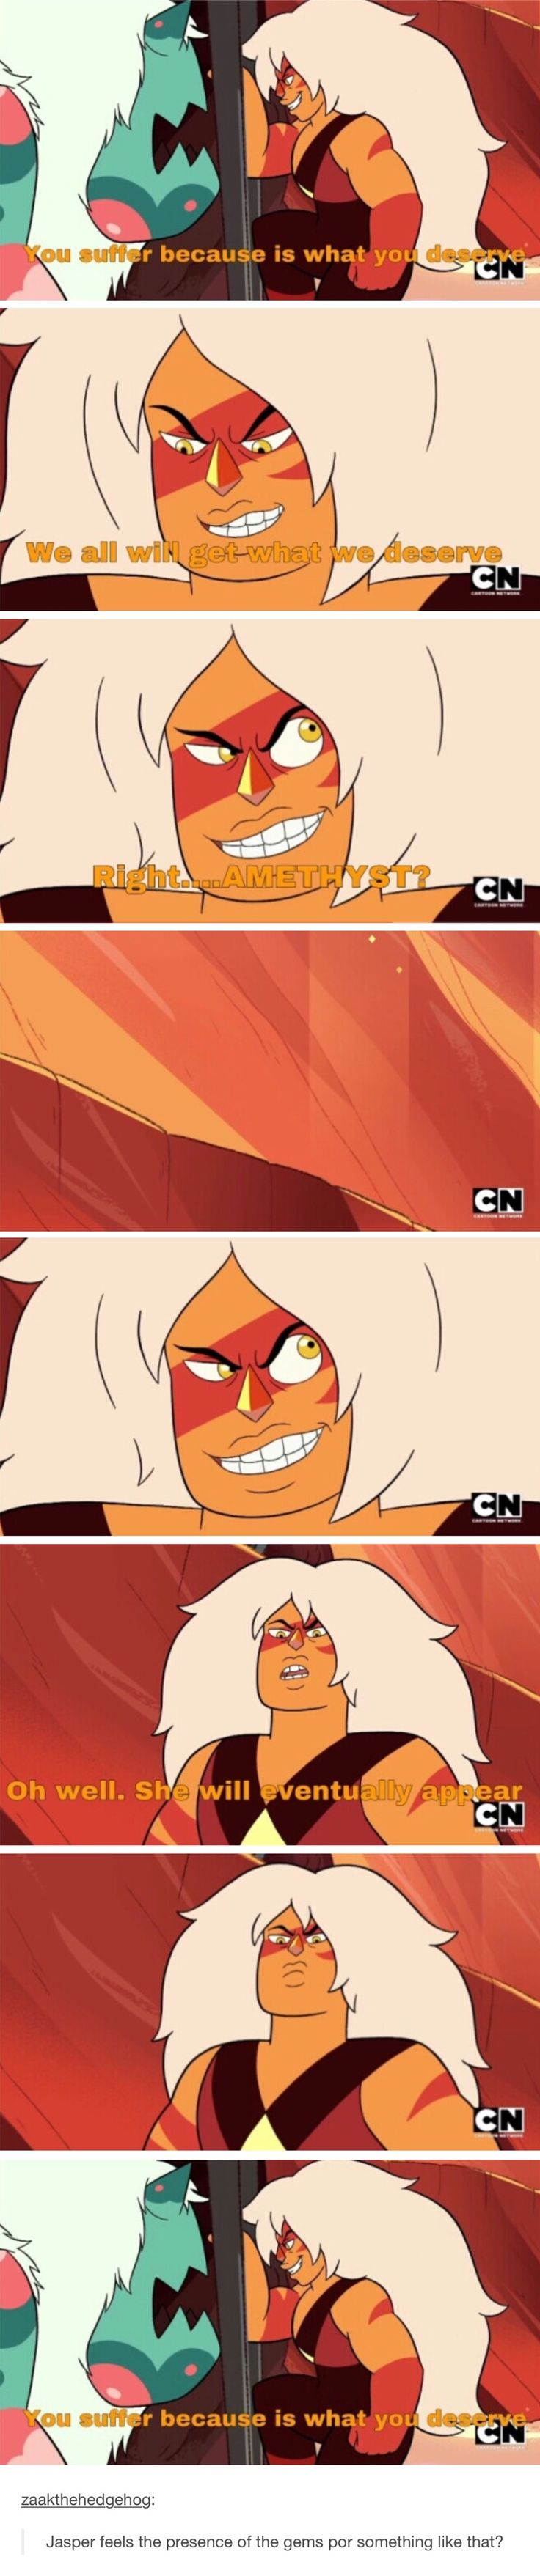 Not what it says at the bottom, but when jasper says that the creature deserves its suffering and then jasper turns into one of those creatures